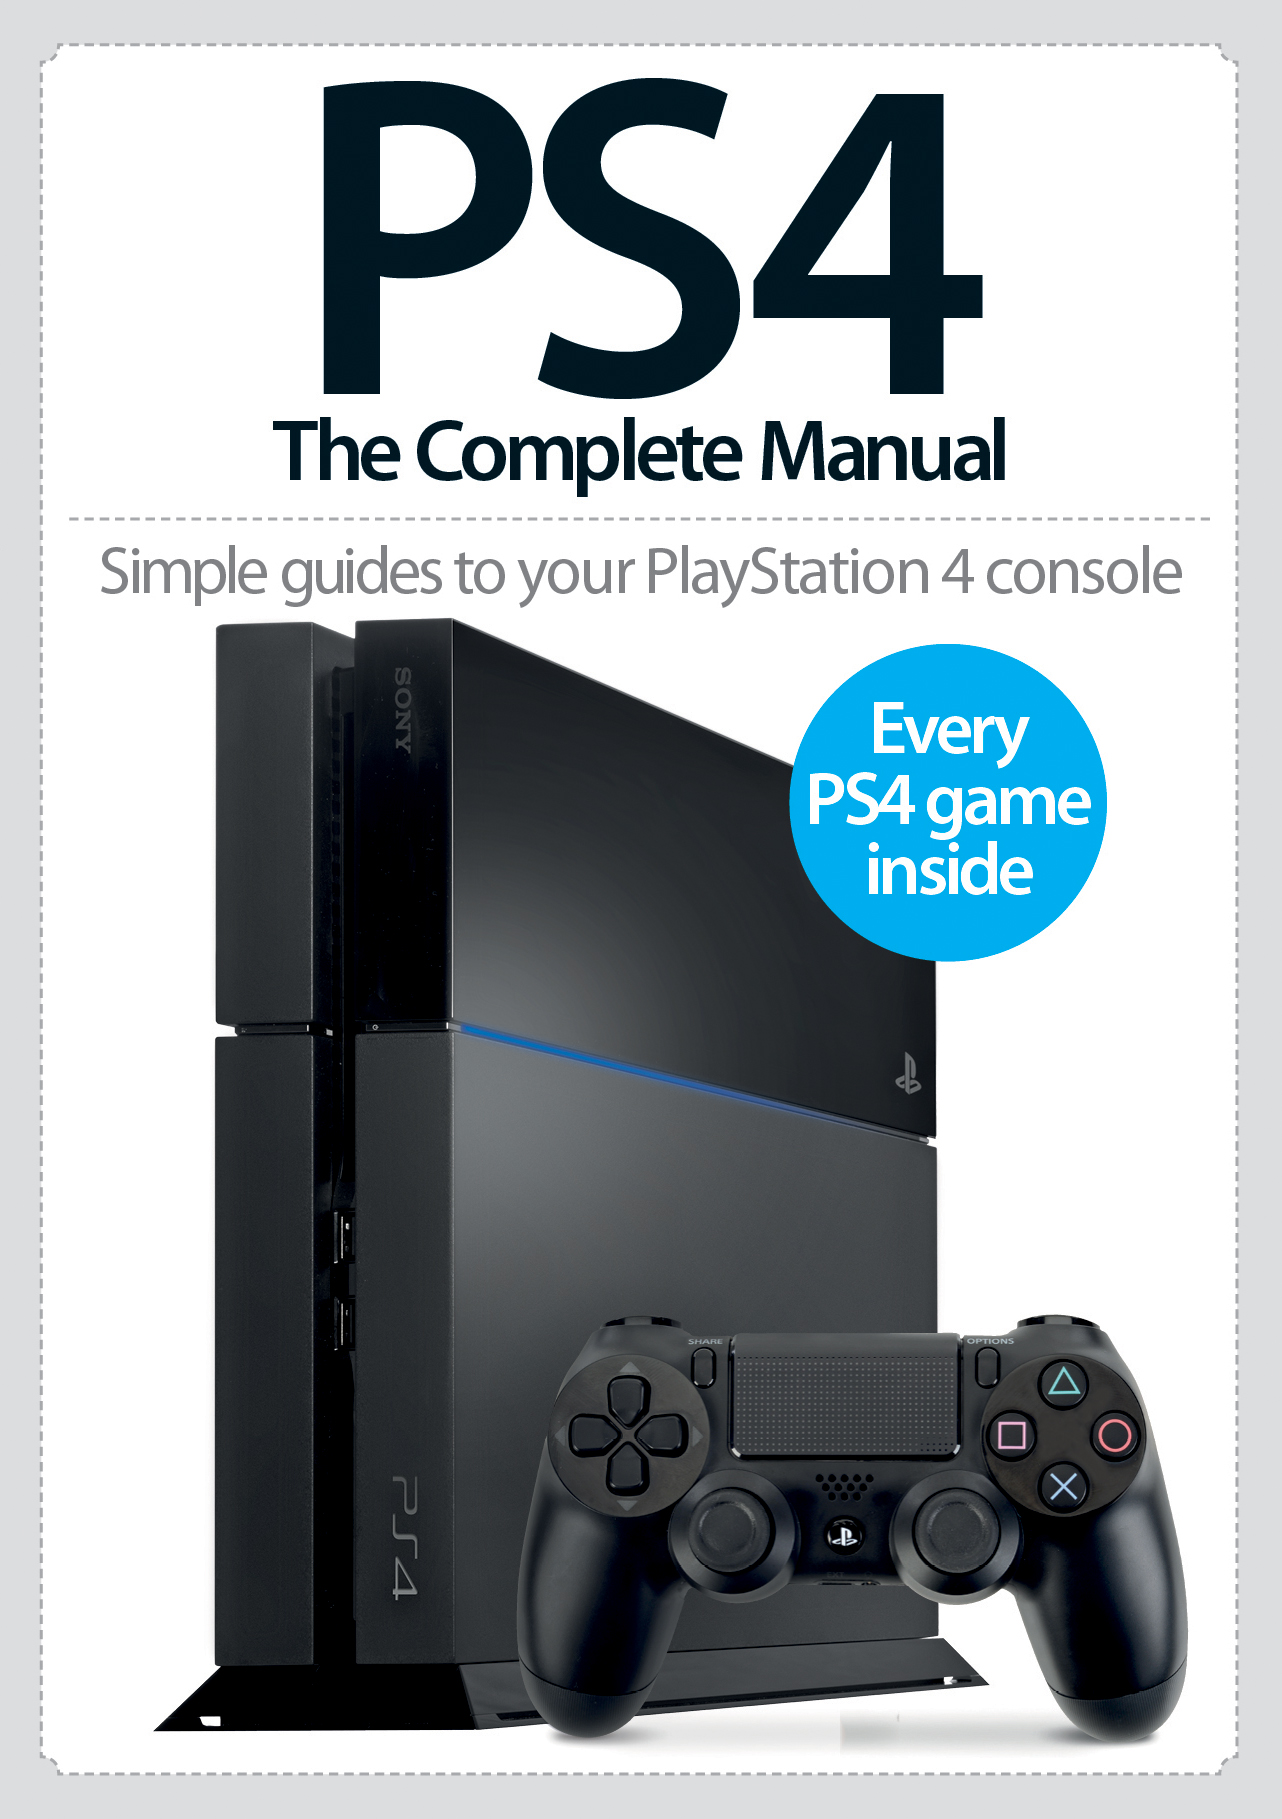 ps4-completemanual